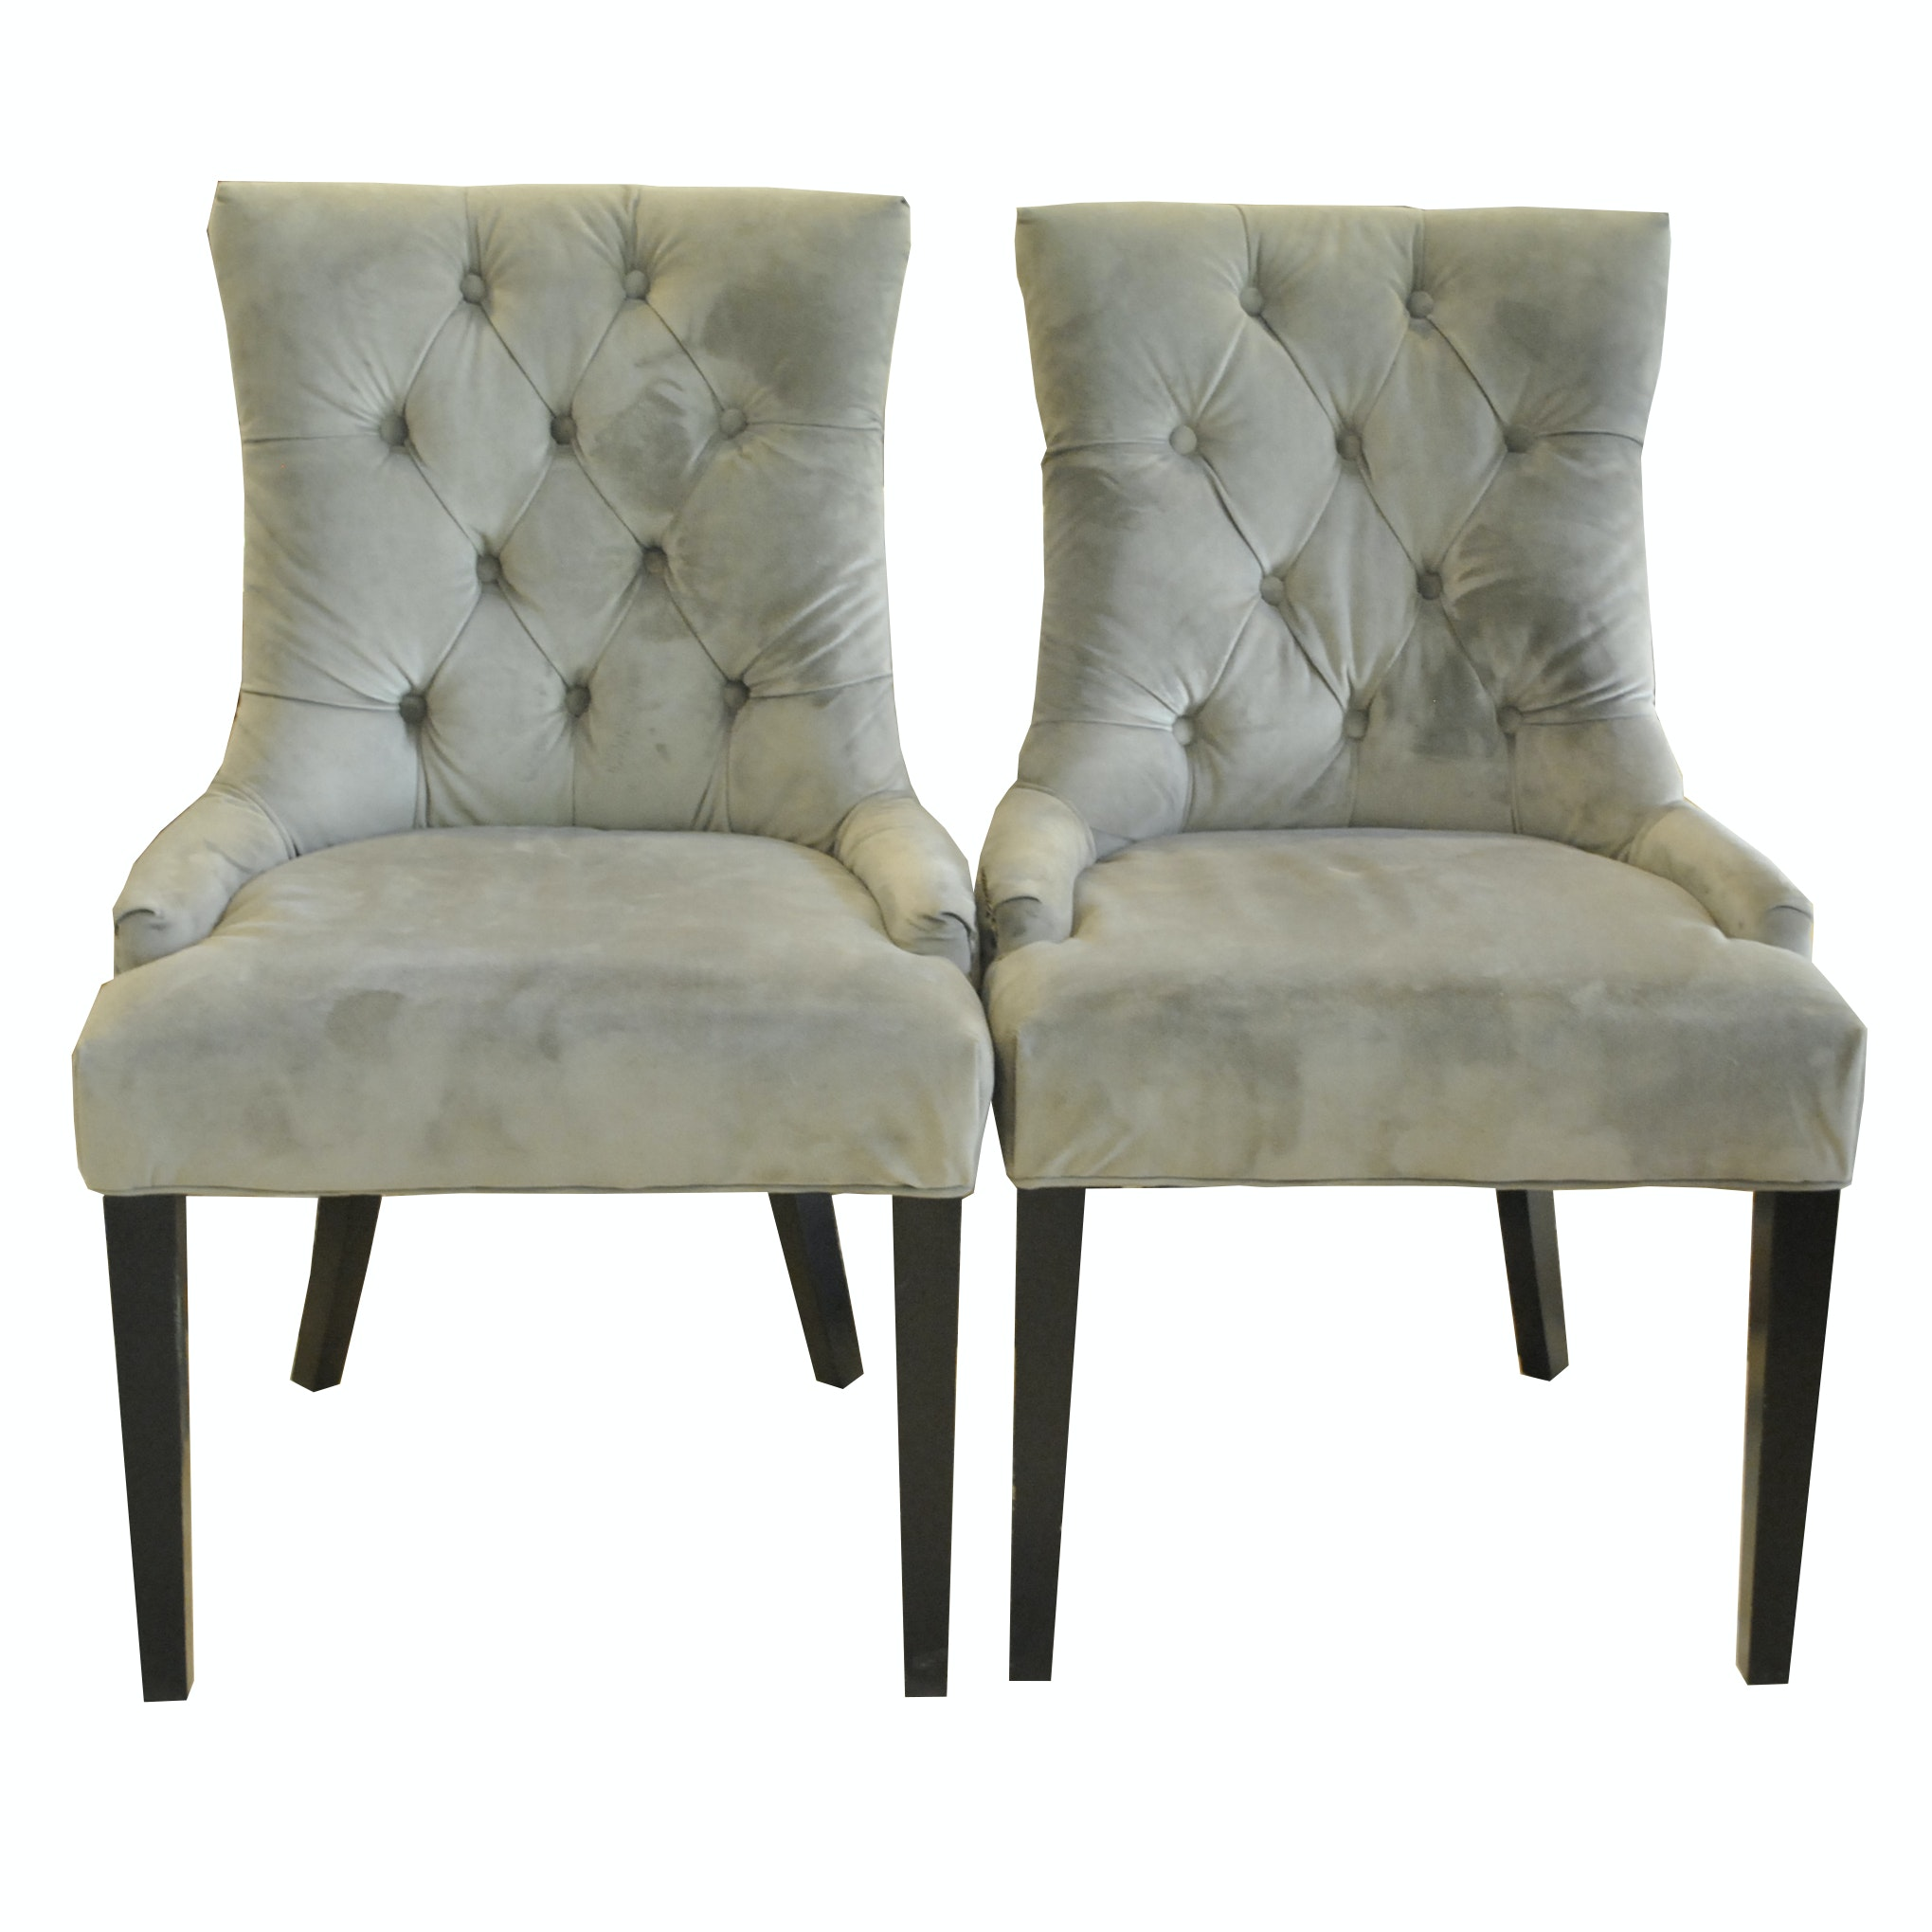 Pair of Contemporary Tufted Side Chairs by Safavieh